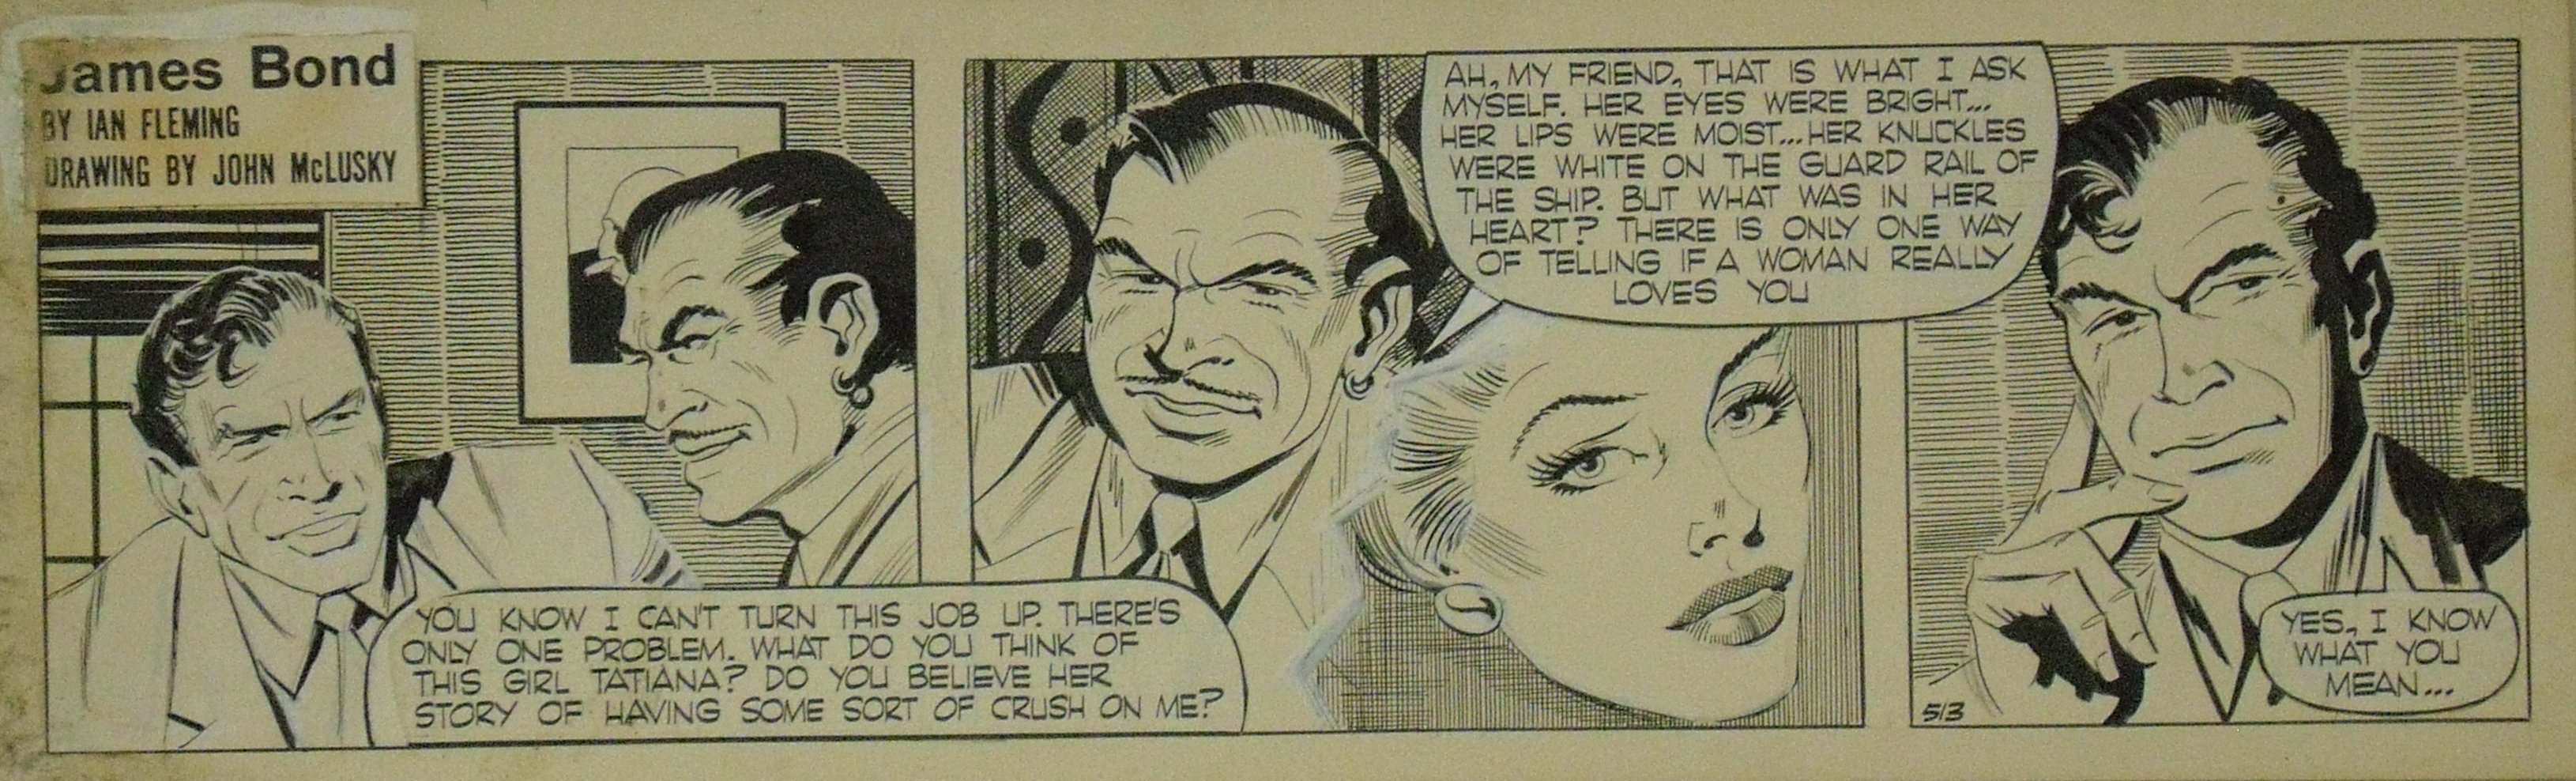 From Russia With Love comic strip from the Daily Express and drawn by John McLusky